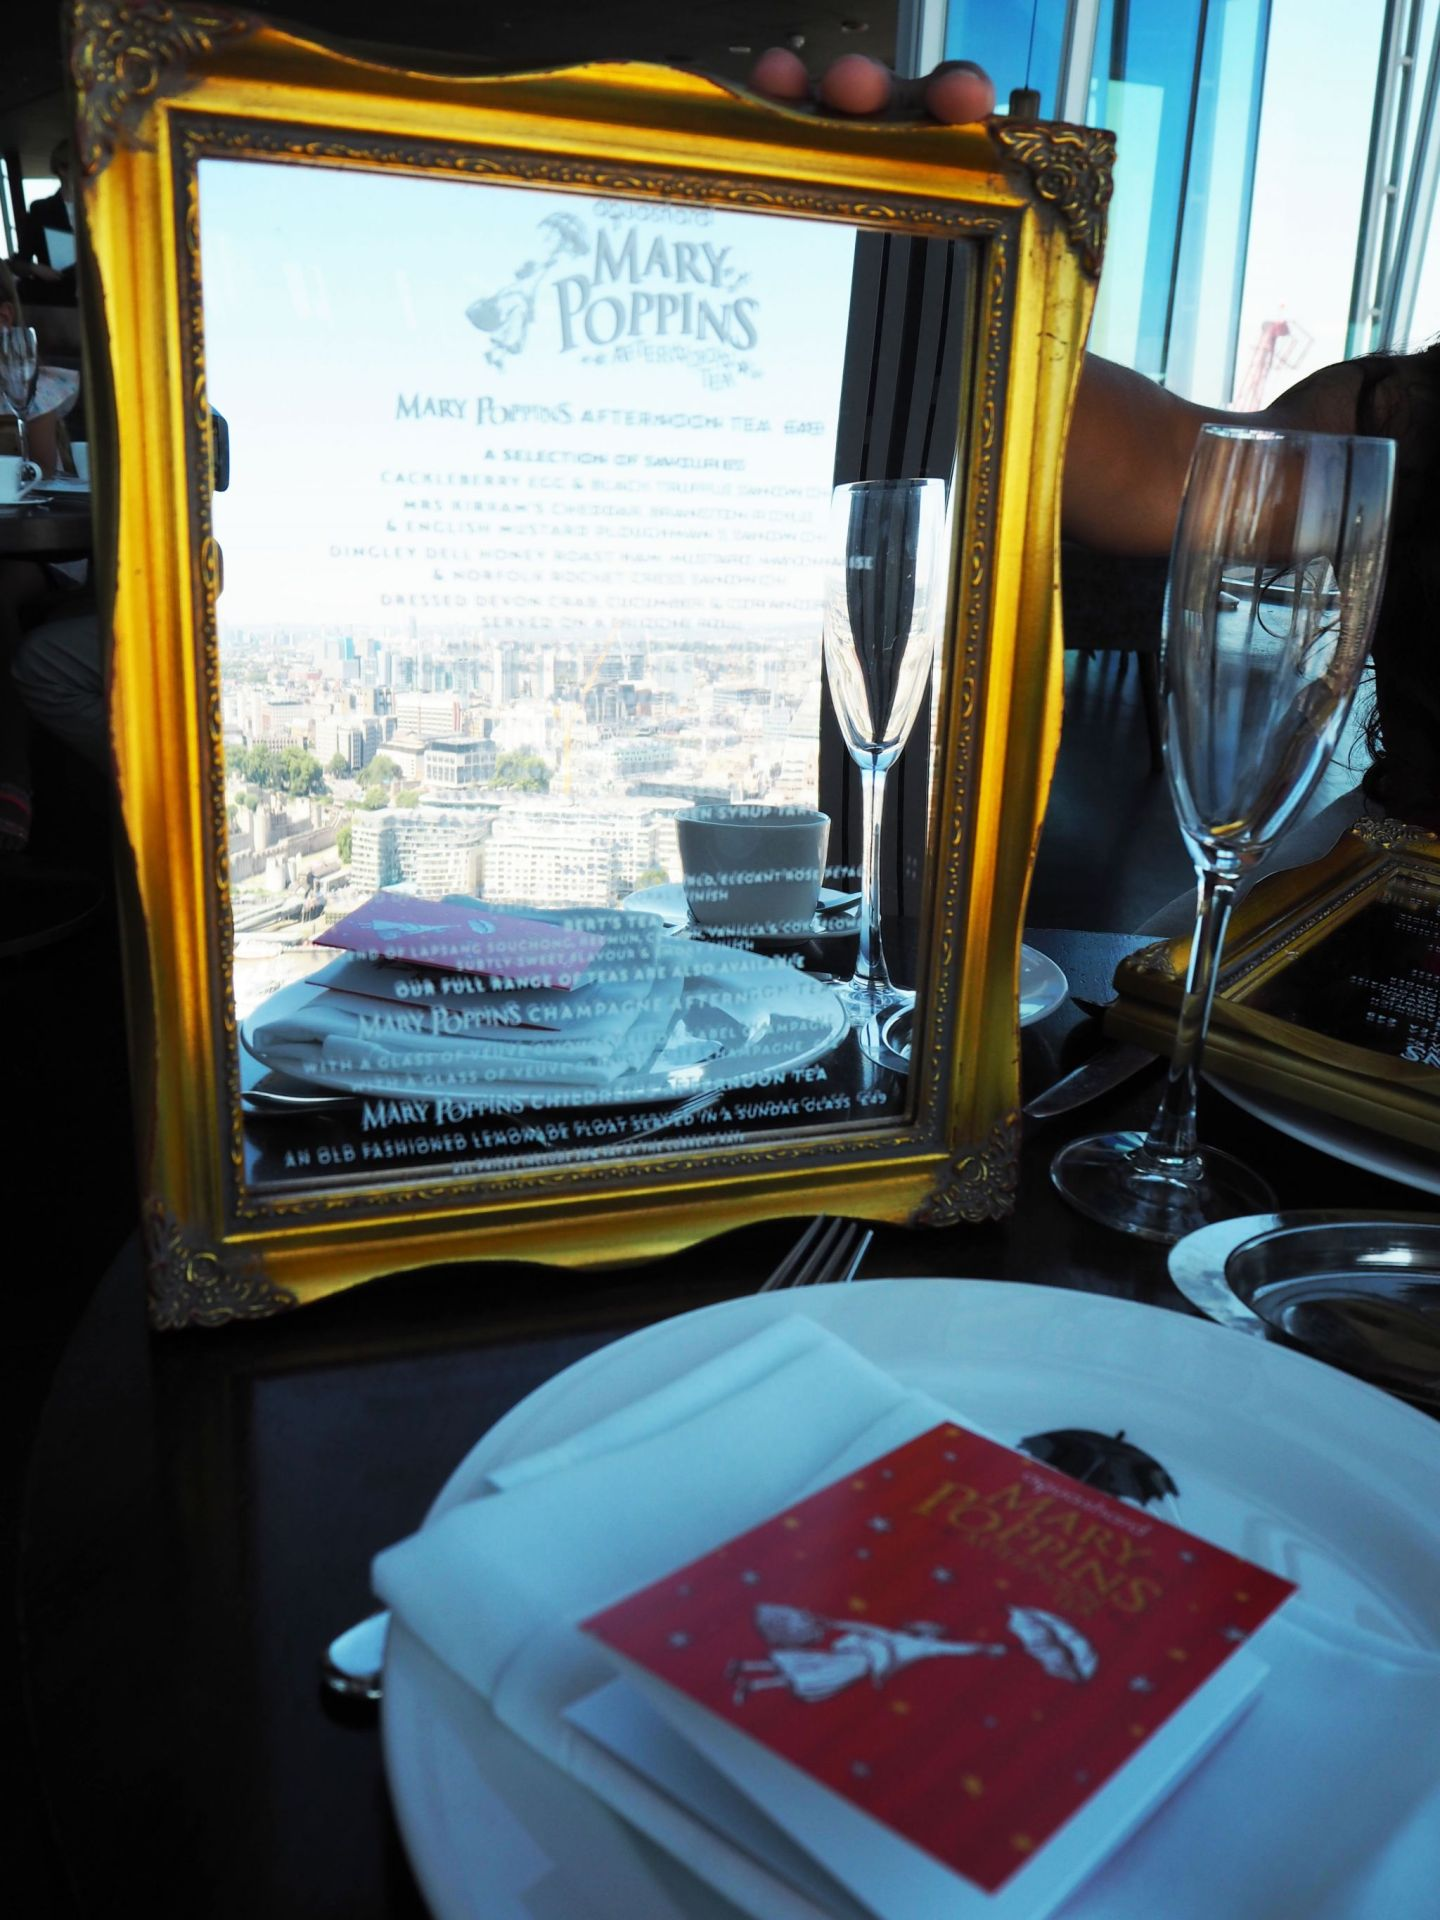 Mary Poppins Afternoon Tea at Aqua Shard London